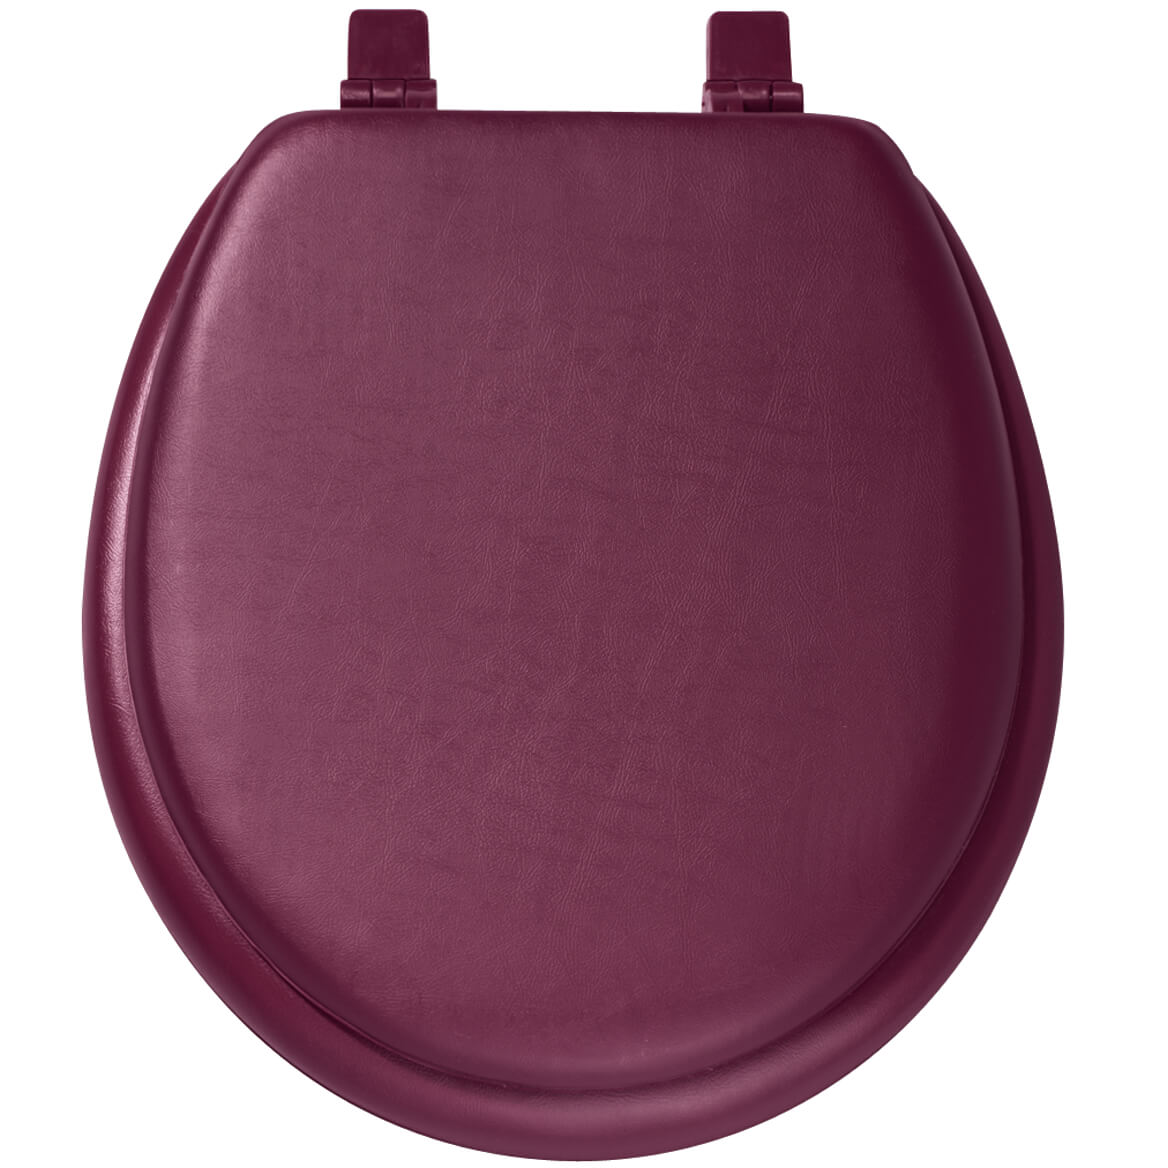 Padded Toilet Seat And Lid Burgundy Ebay